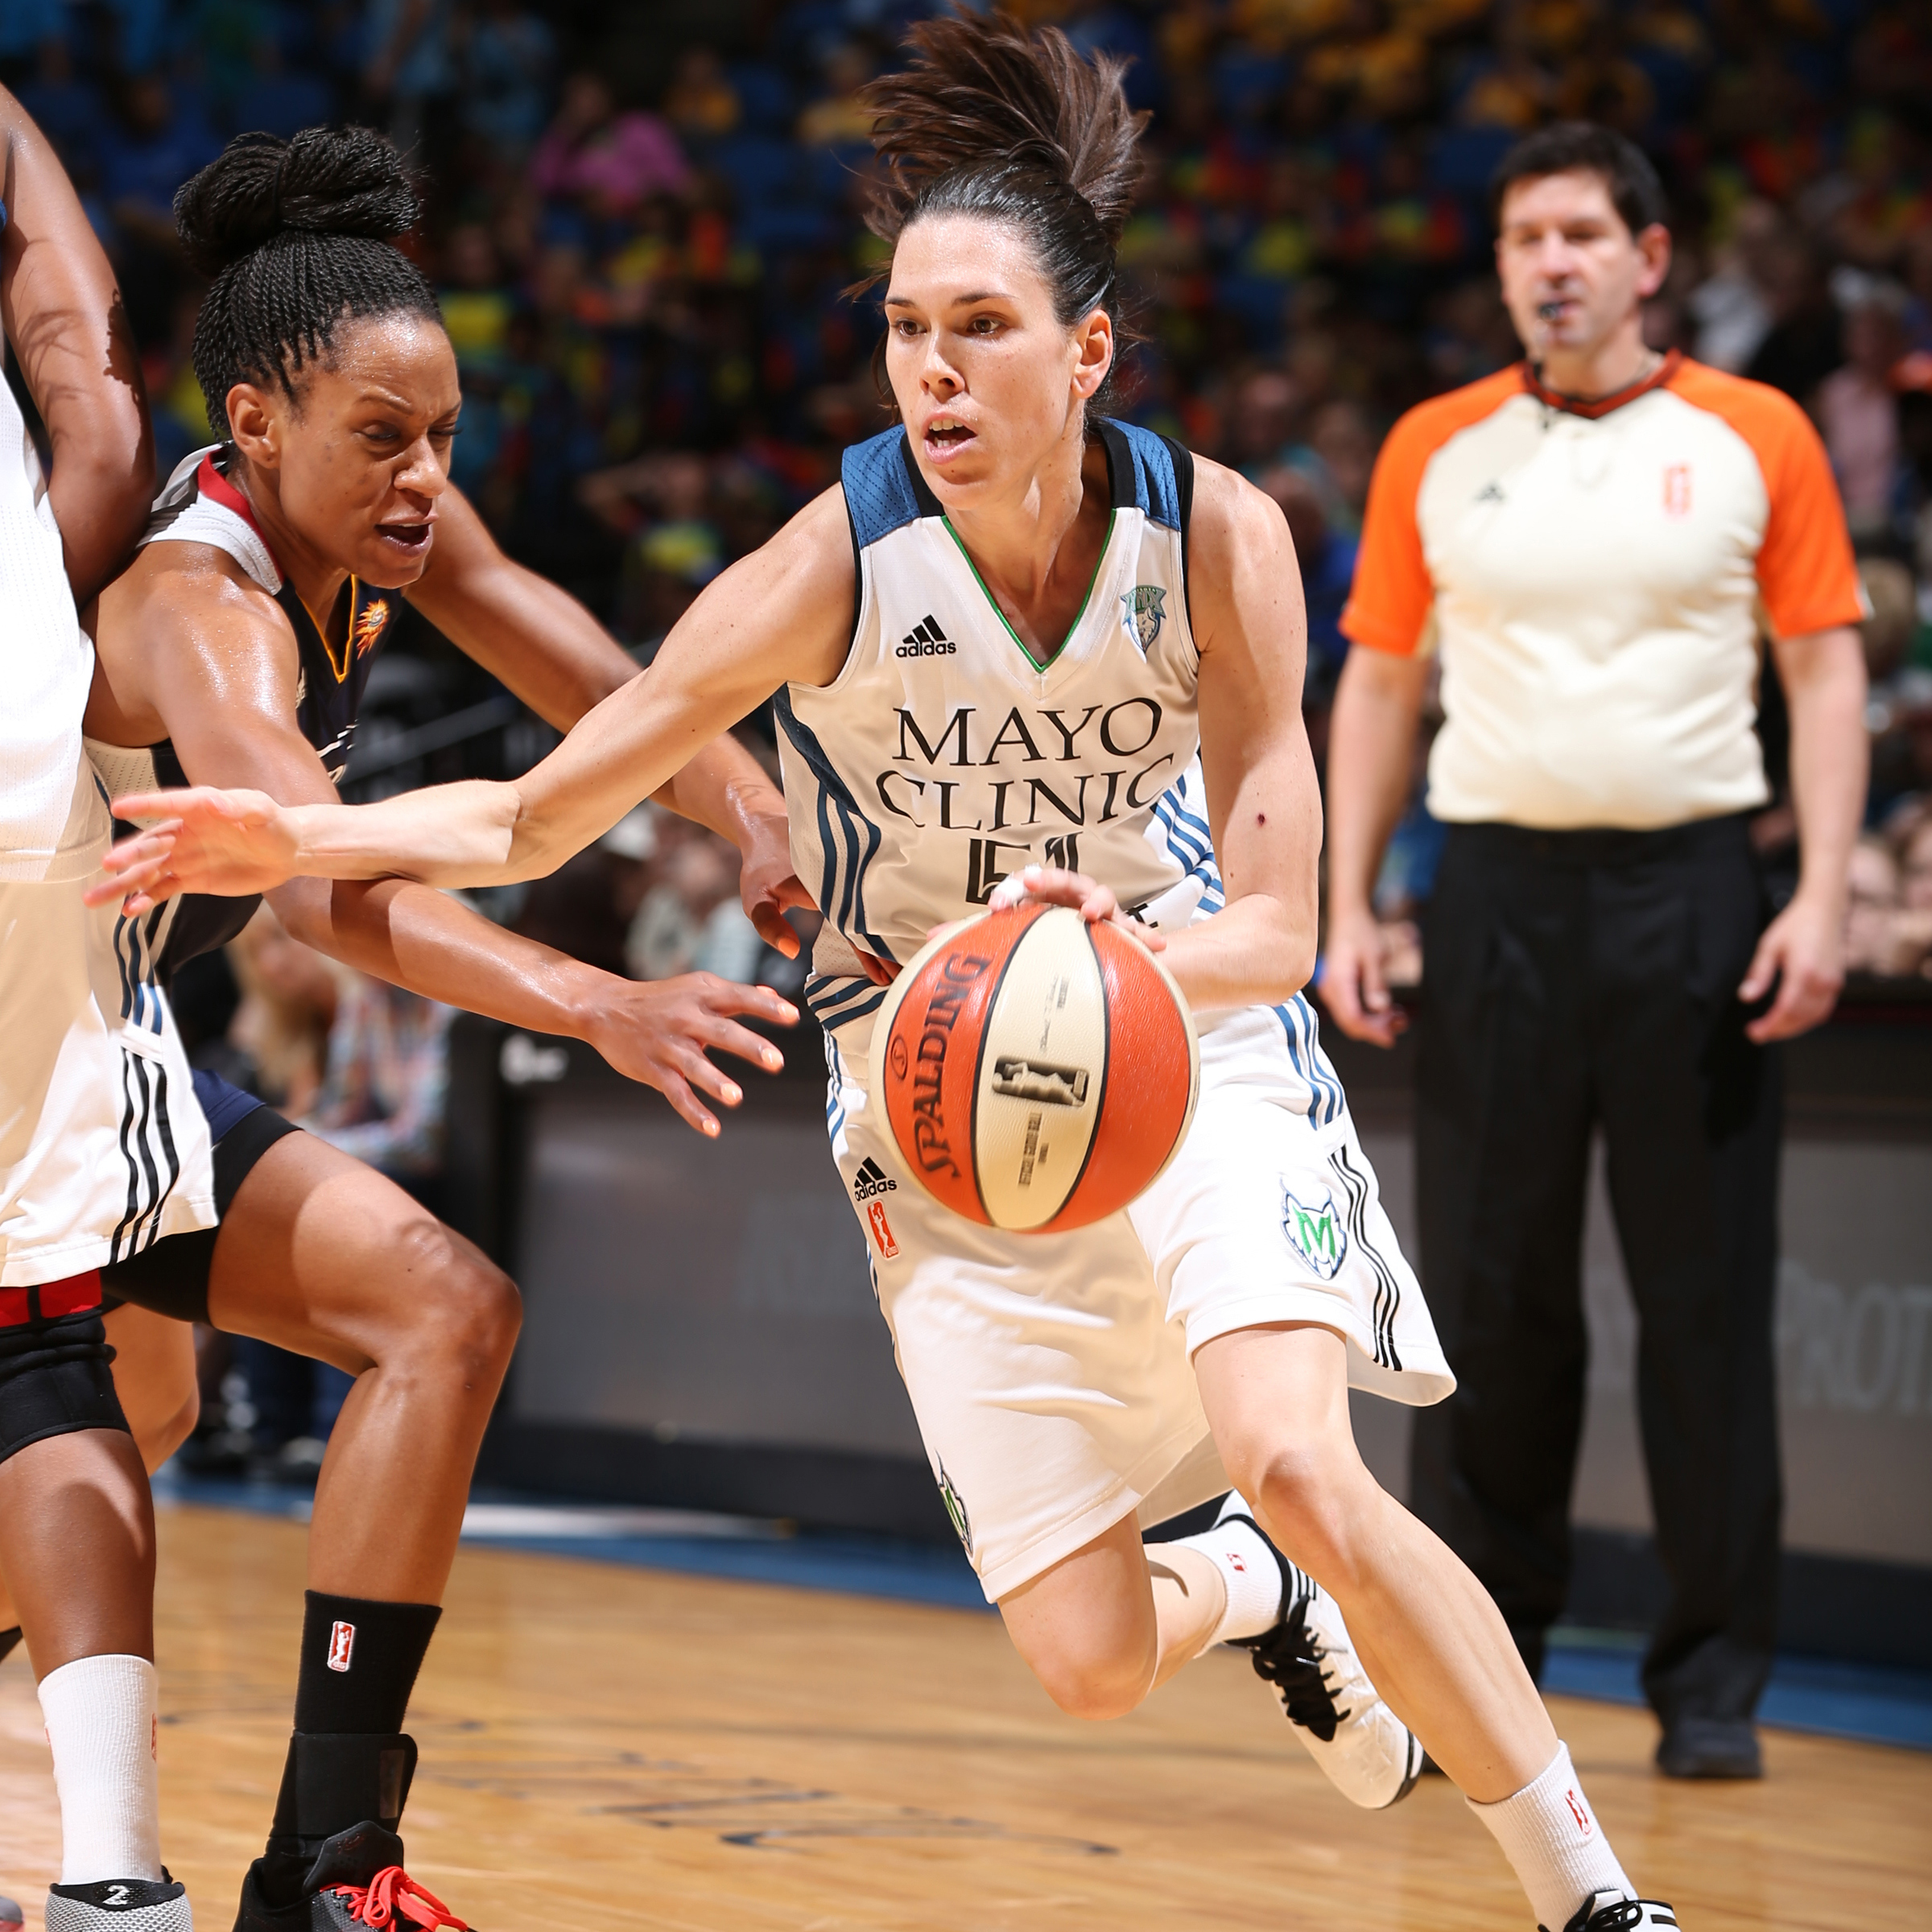 MINNEAPOLIS, MN - JULY 22: Anna Cruz #51 of the Minnesota Lynx drives against the Connecticut Sun on July 22, 2015 at Target Center in Minneapolis, Minnesota. NOTE TO USER: User expressly acknowledges and agrees that, by downloading and or using this Photograph, user is consenting to the terms and conditions of the Getty Images License Agreement. Mandatory Copyright Notice: Copyright 2015 NBAE (Photo by David Sherman/NBAE via Getty Images)